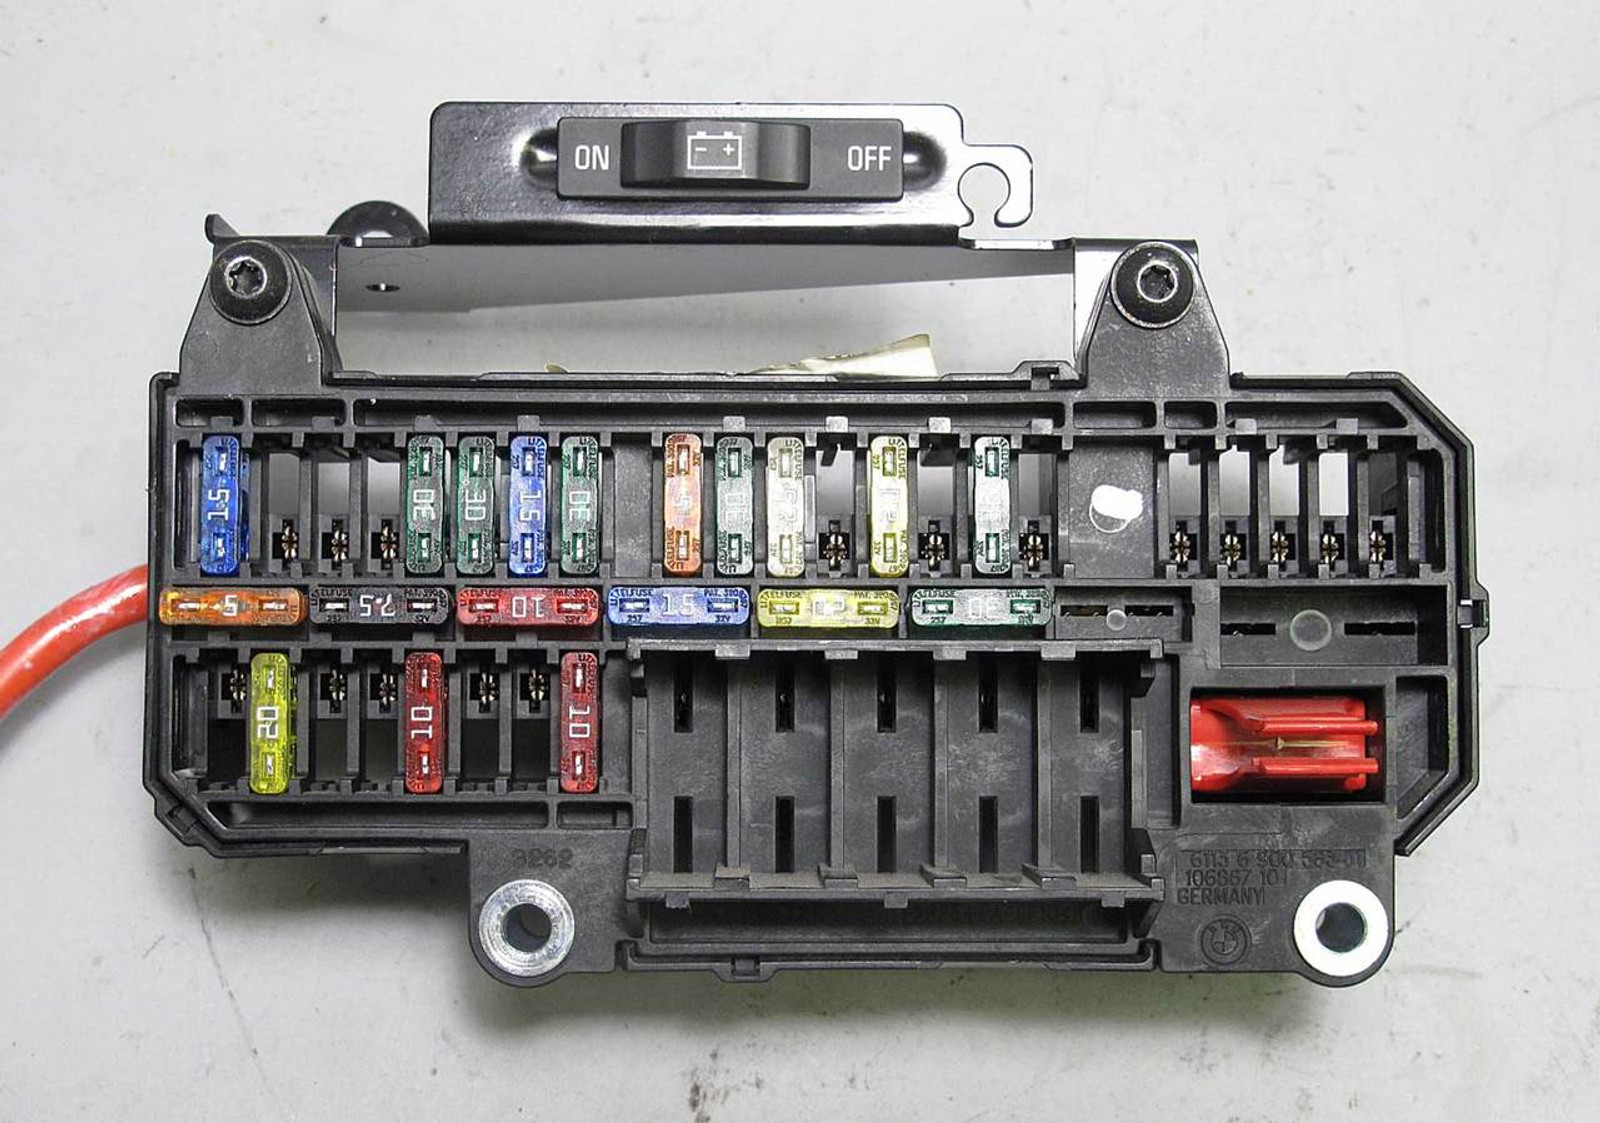 2002 Bmw 7 Series Fuse Box Diy Enthusiasts Wiring Diagrams \u2022 2008 BMW  Fuse Box Diagram Fuse Box On Bmw 7 Series